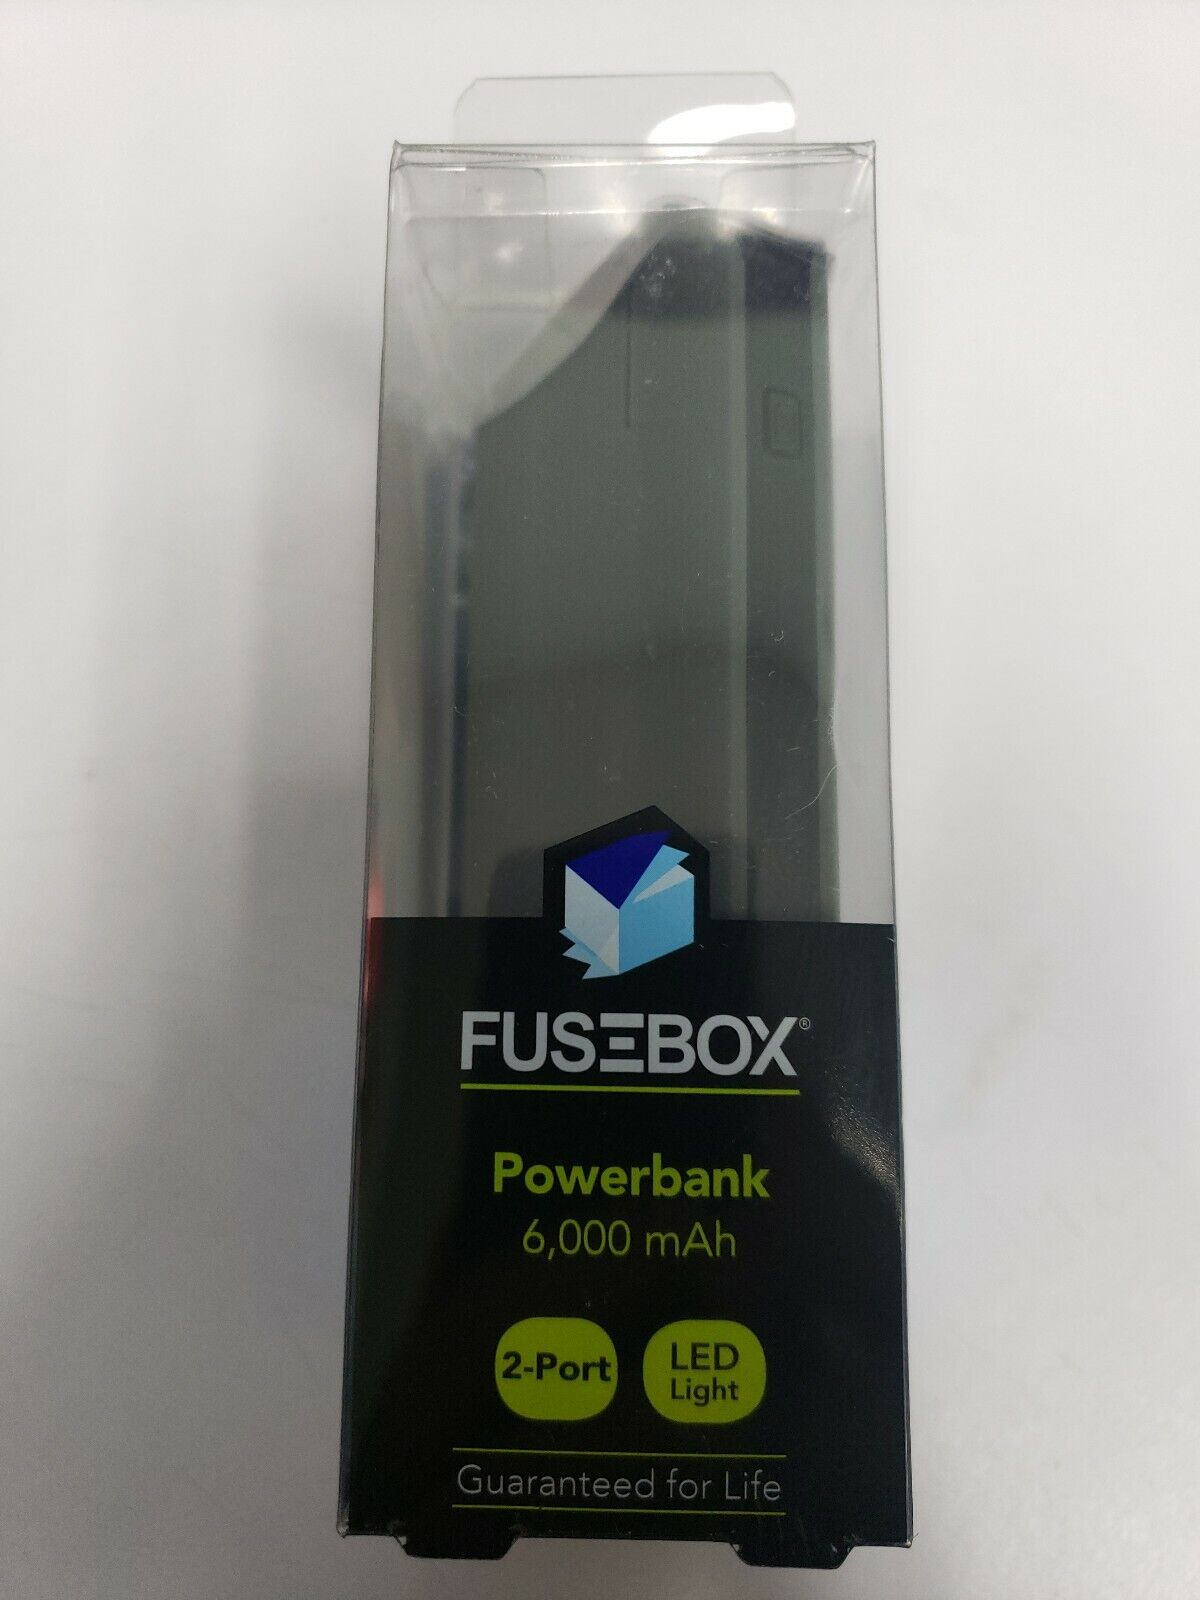 Fusebox Power Bank 2 Ports 6000 mAh Portable Power Source with LED Light  for sale onlineeBay